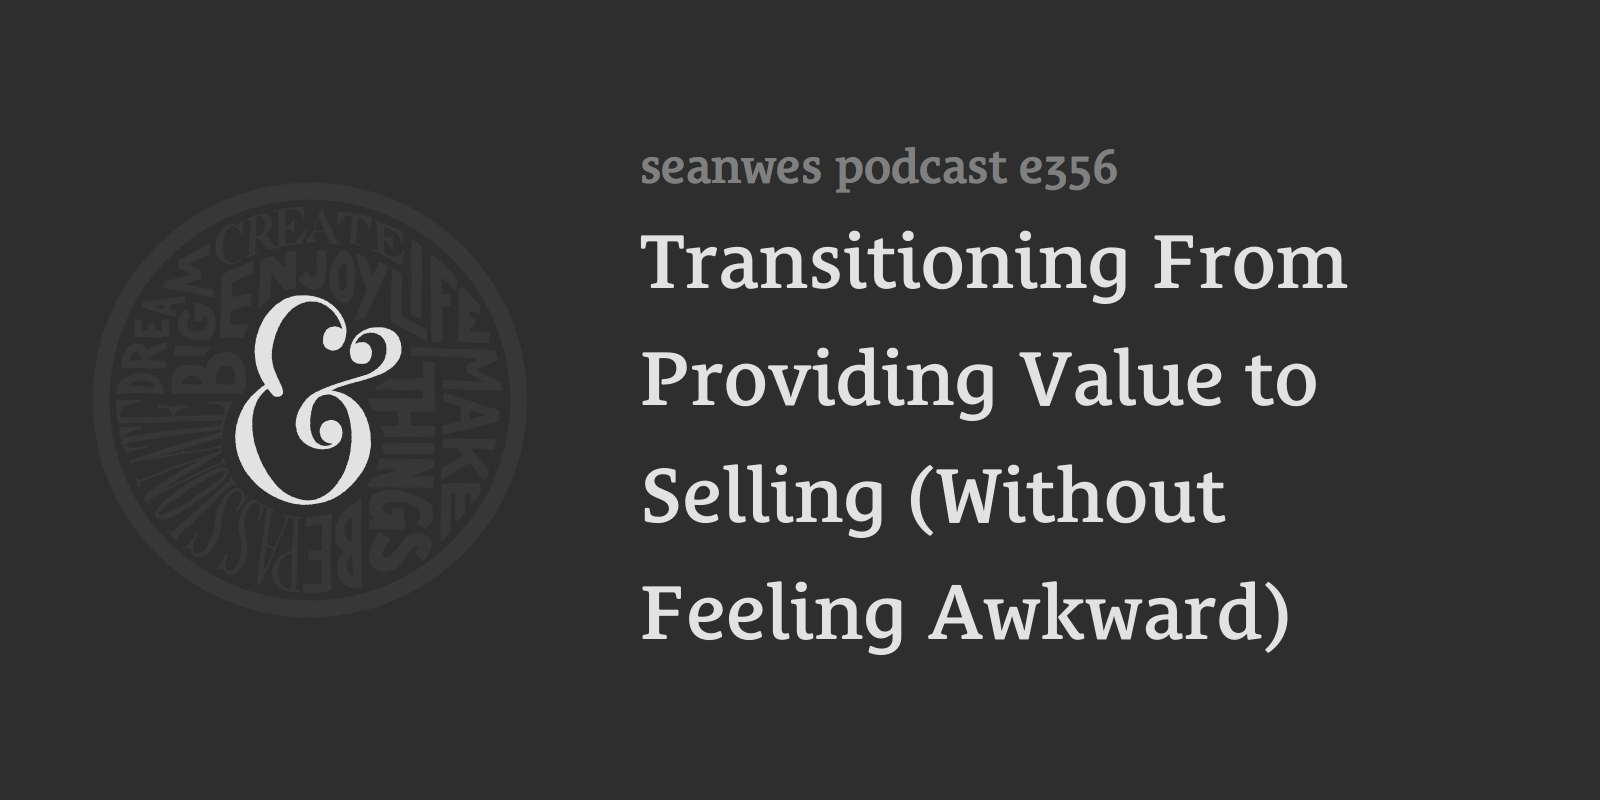 Transitioning From Providing Value to Selling (Without Feeling Awkward)